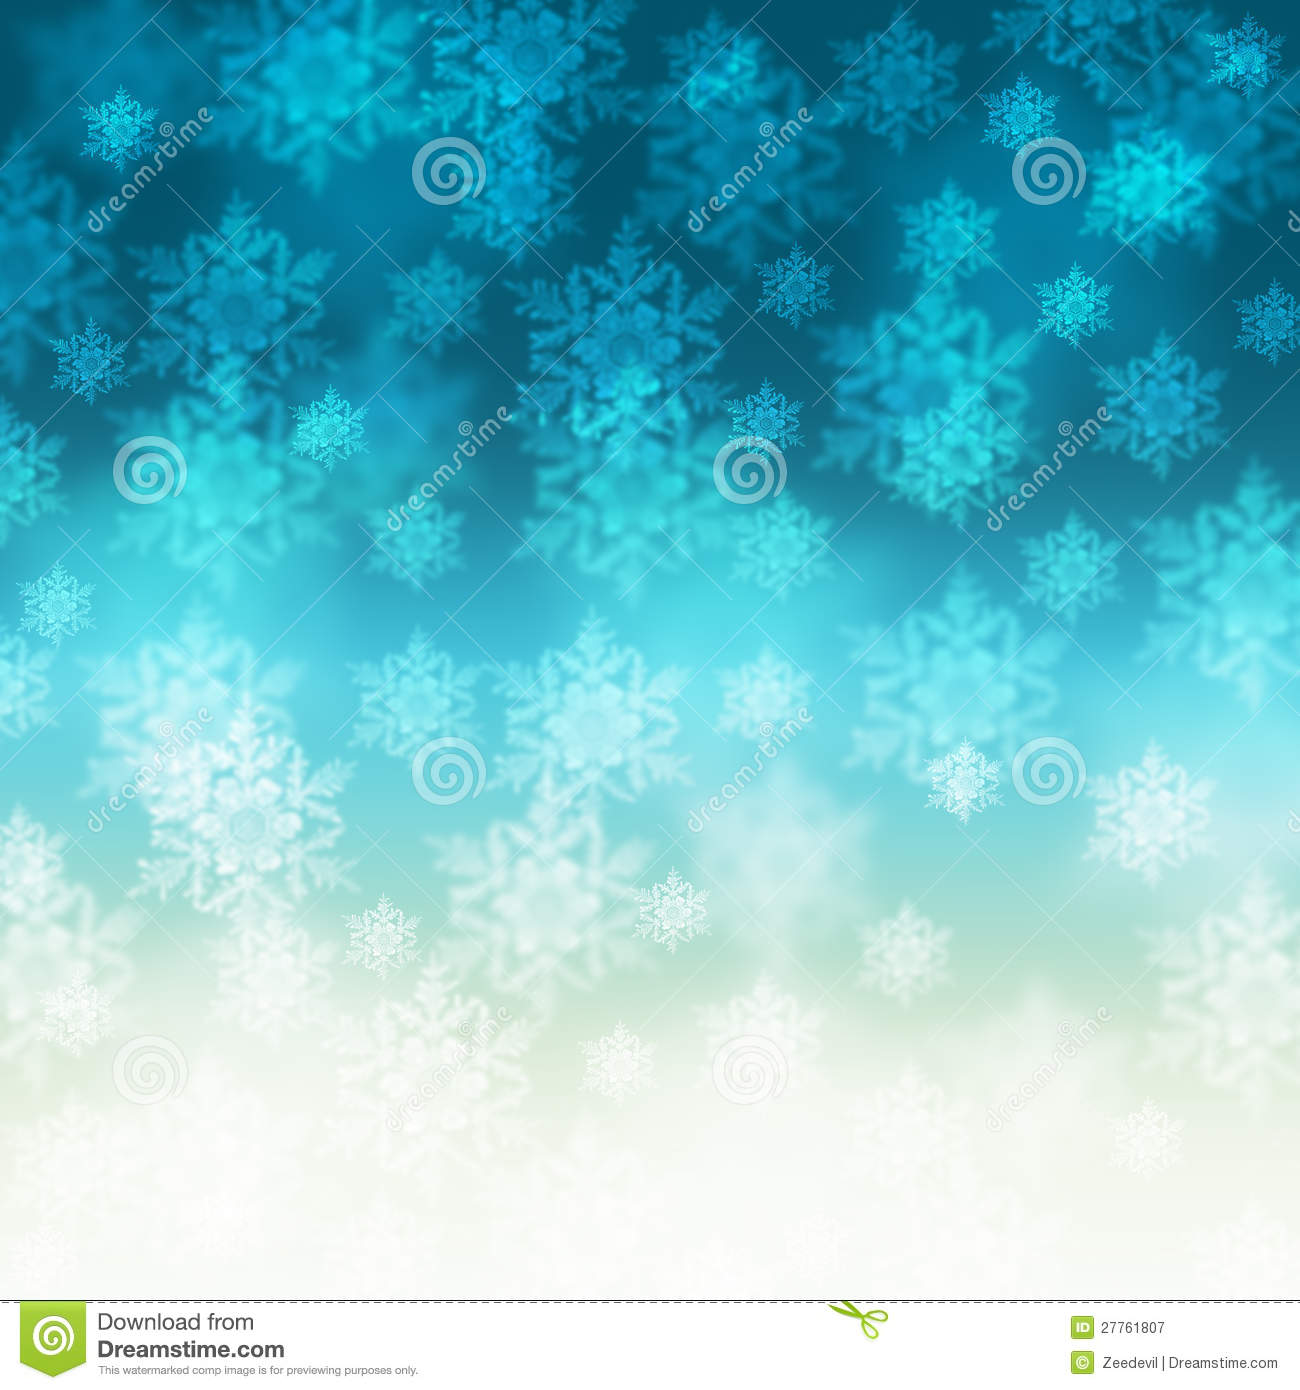 Elegant Christmas Background With Snowflakes Royalty Free